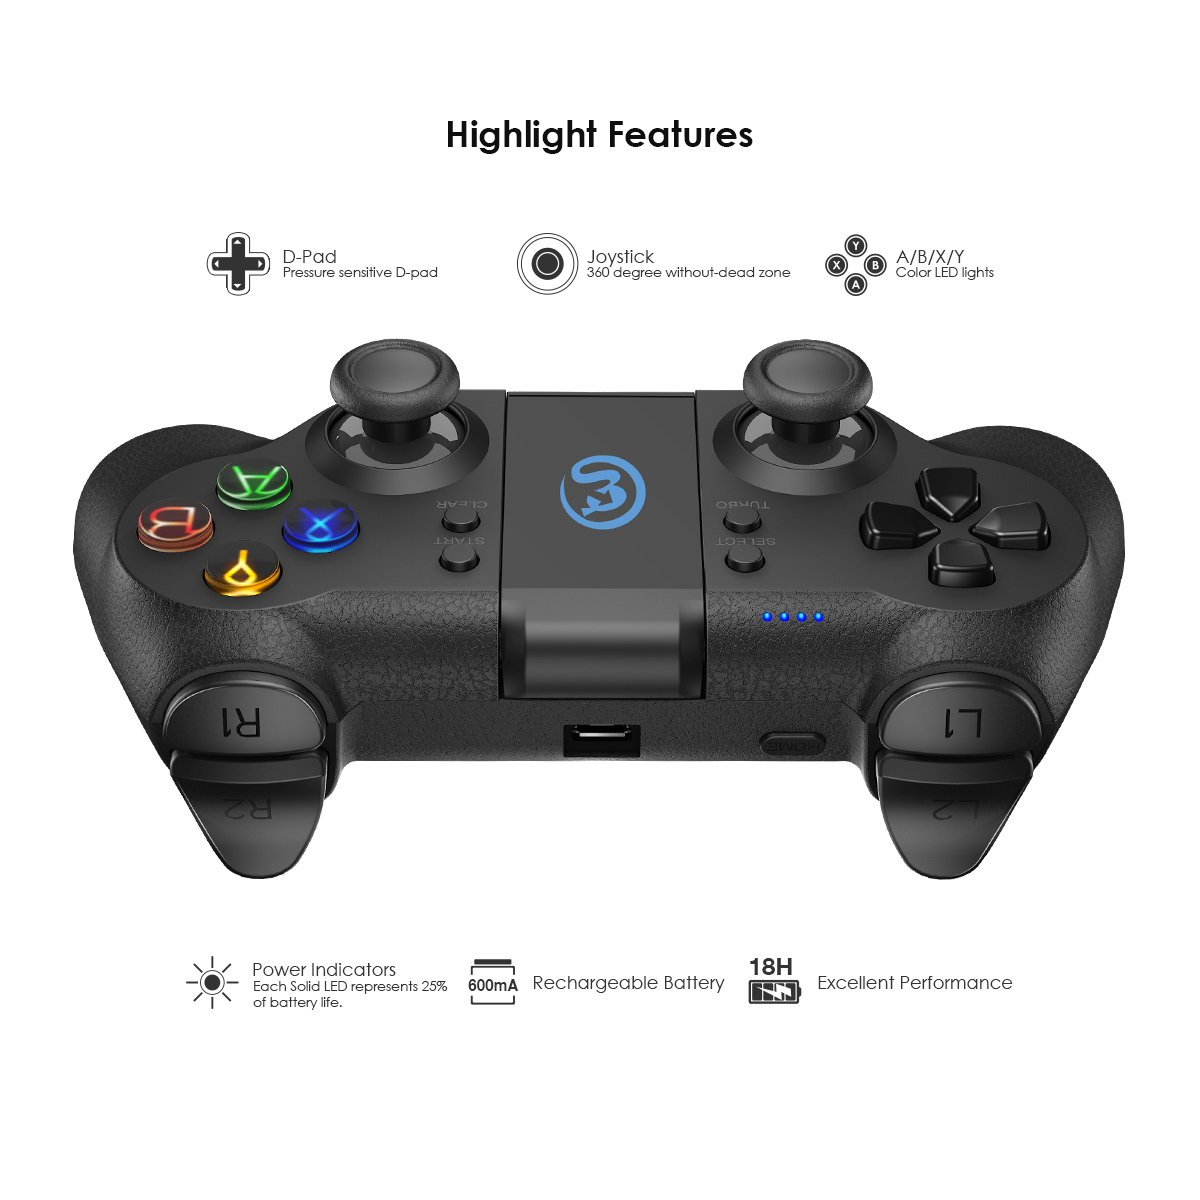 Amazon.com: GameSir T1 Wireless Bluetooth Game Controller for ...